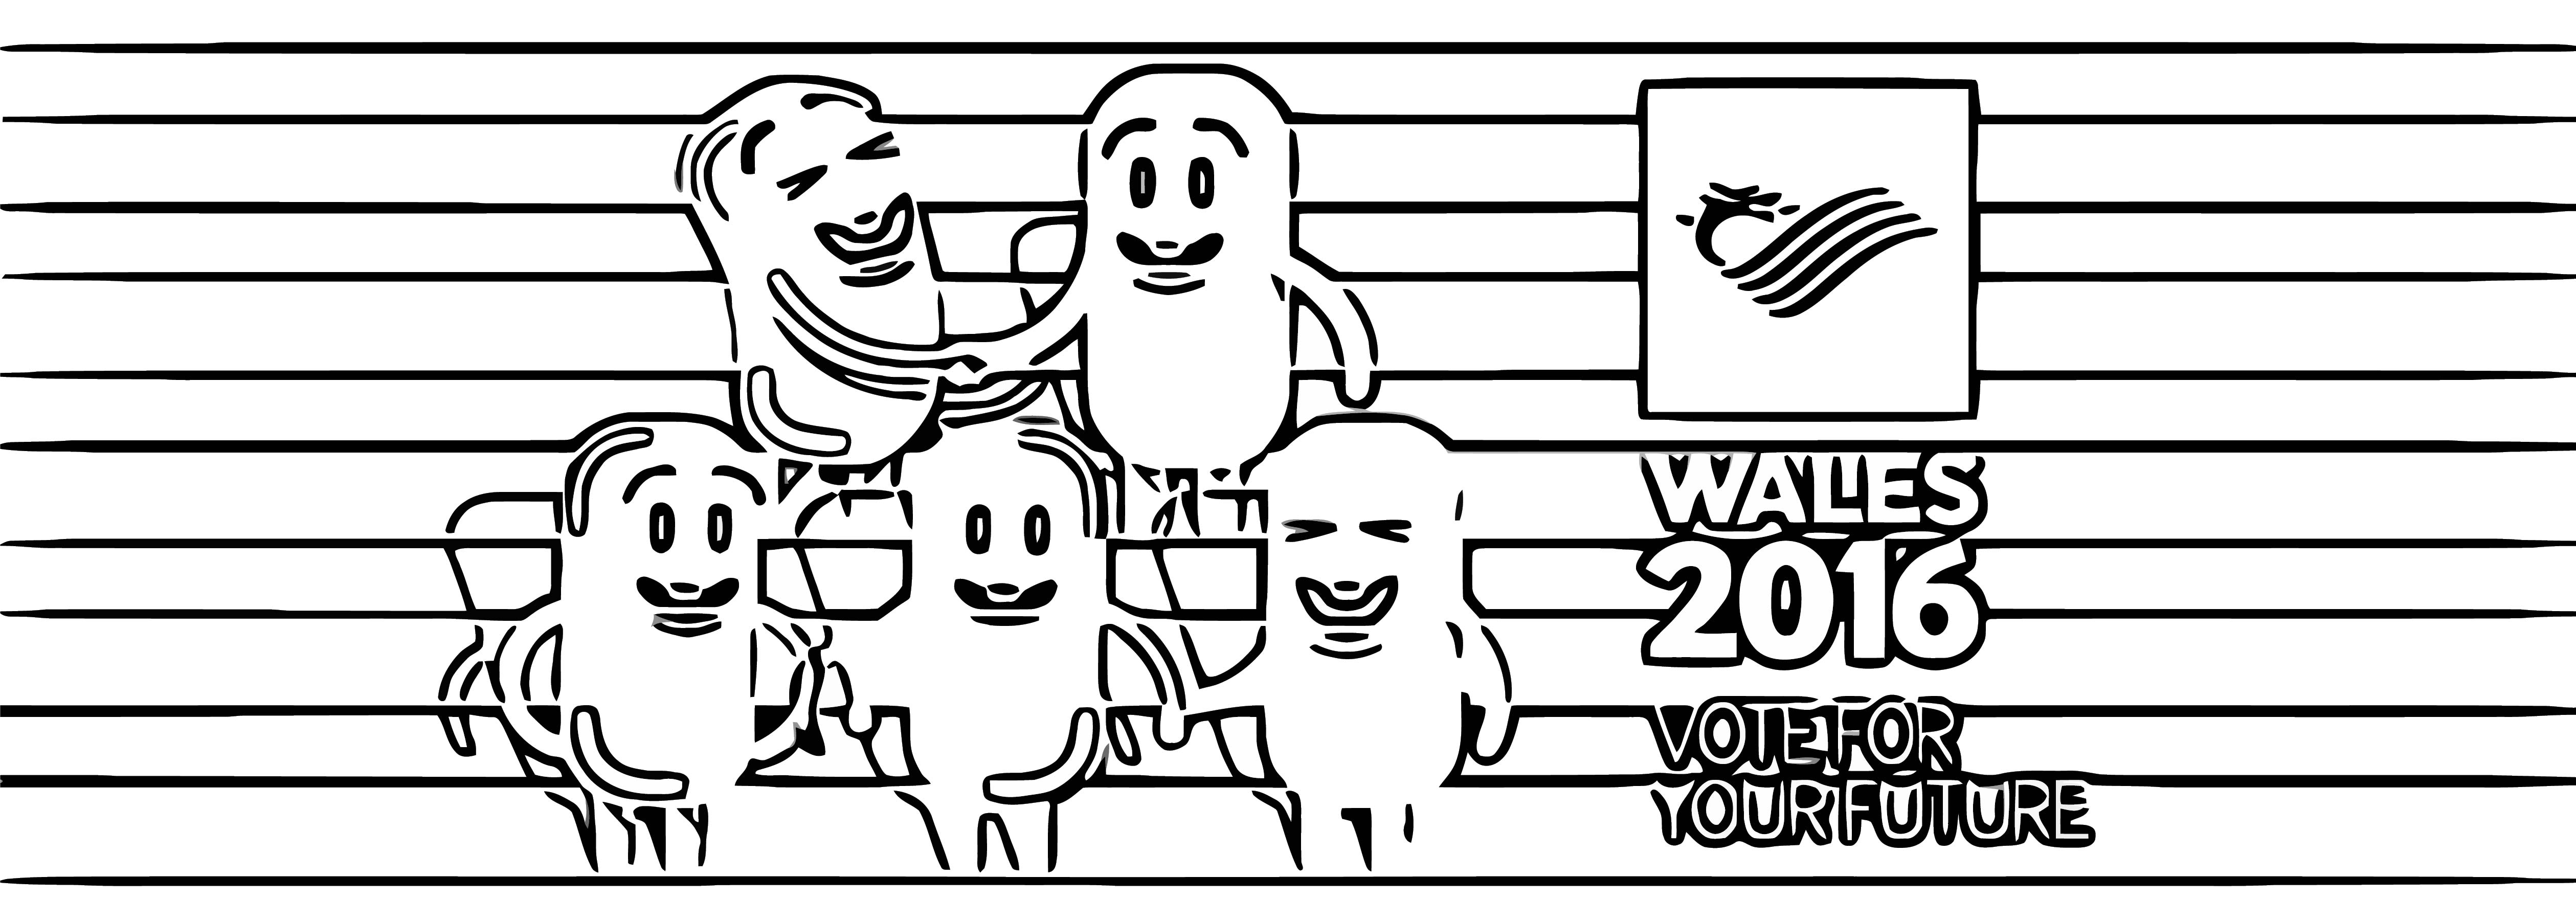 Naw1400x500px Cartoonize Coloring Page